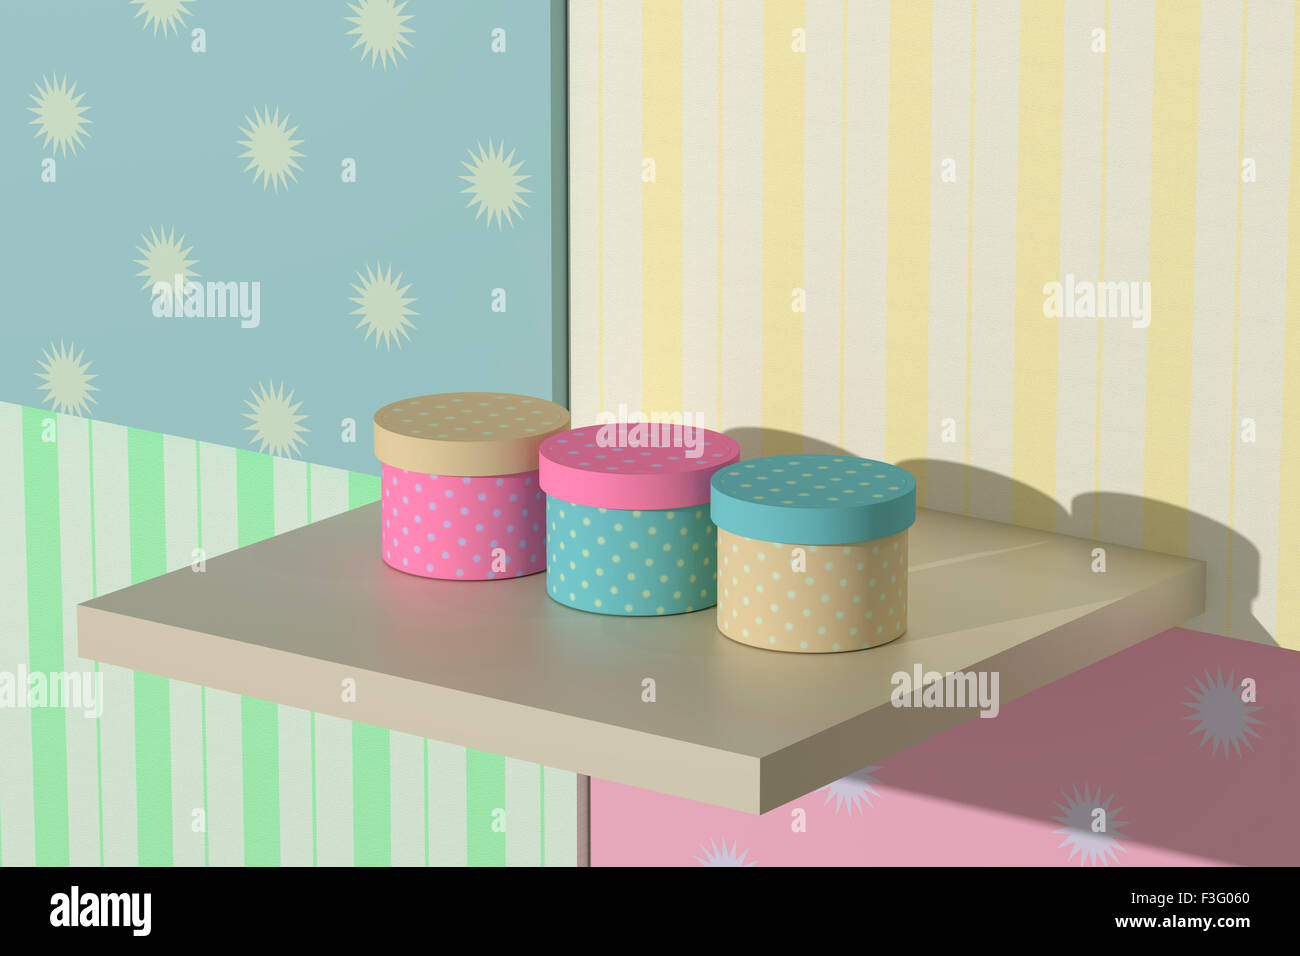 3d rendering of some gift stamped boxes - Stock Image